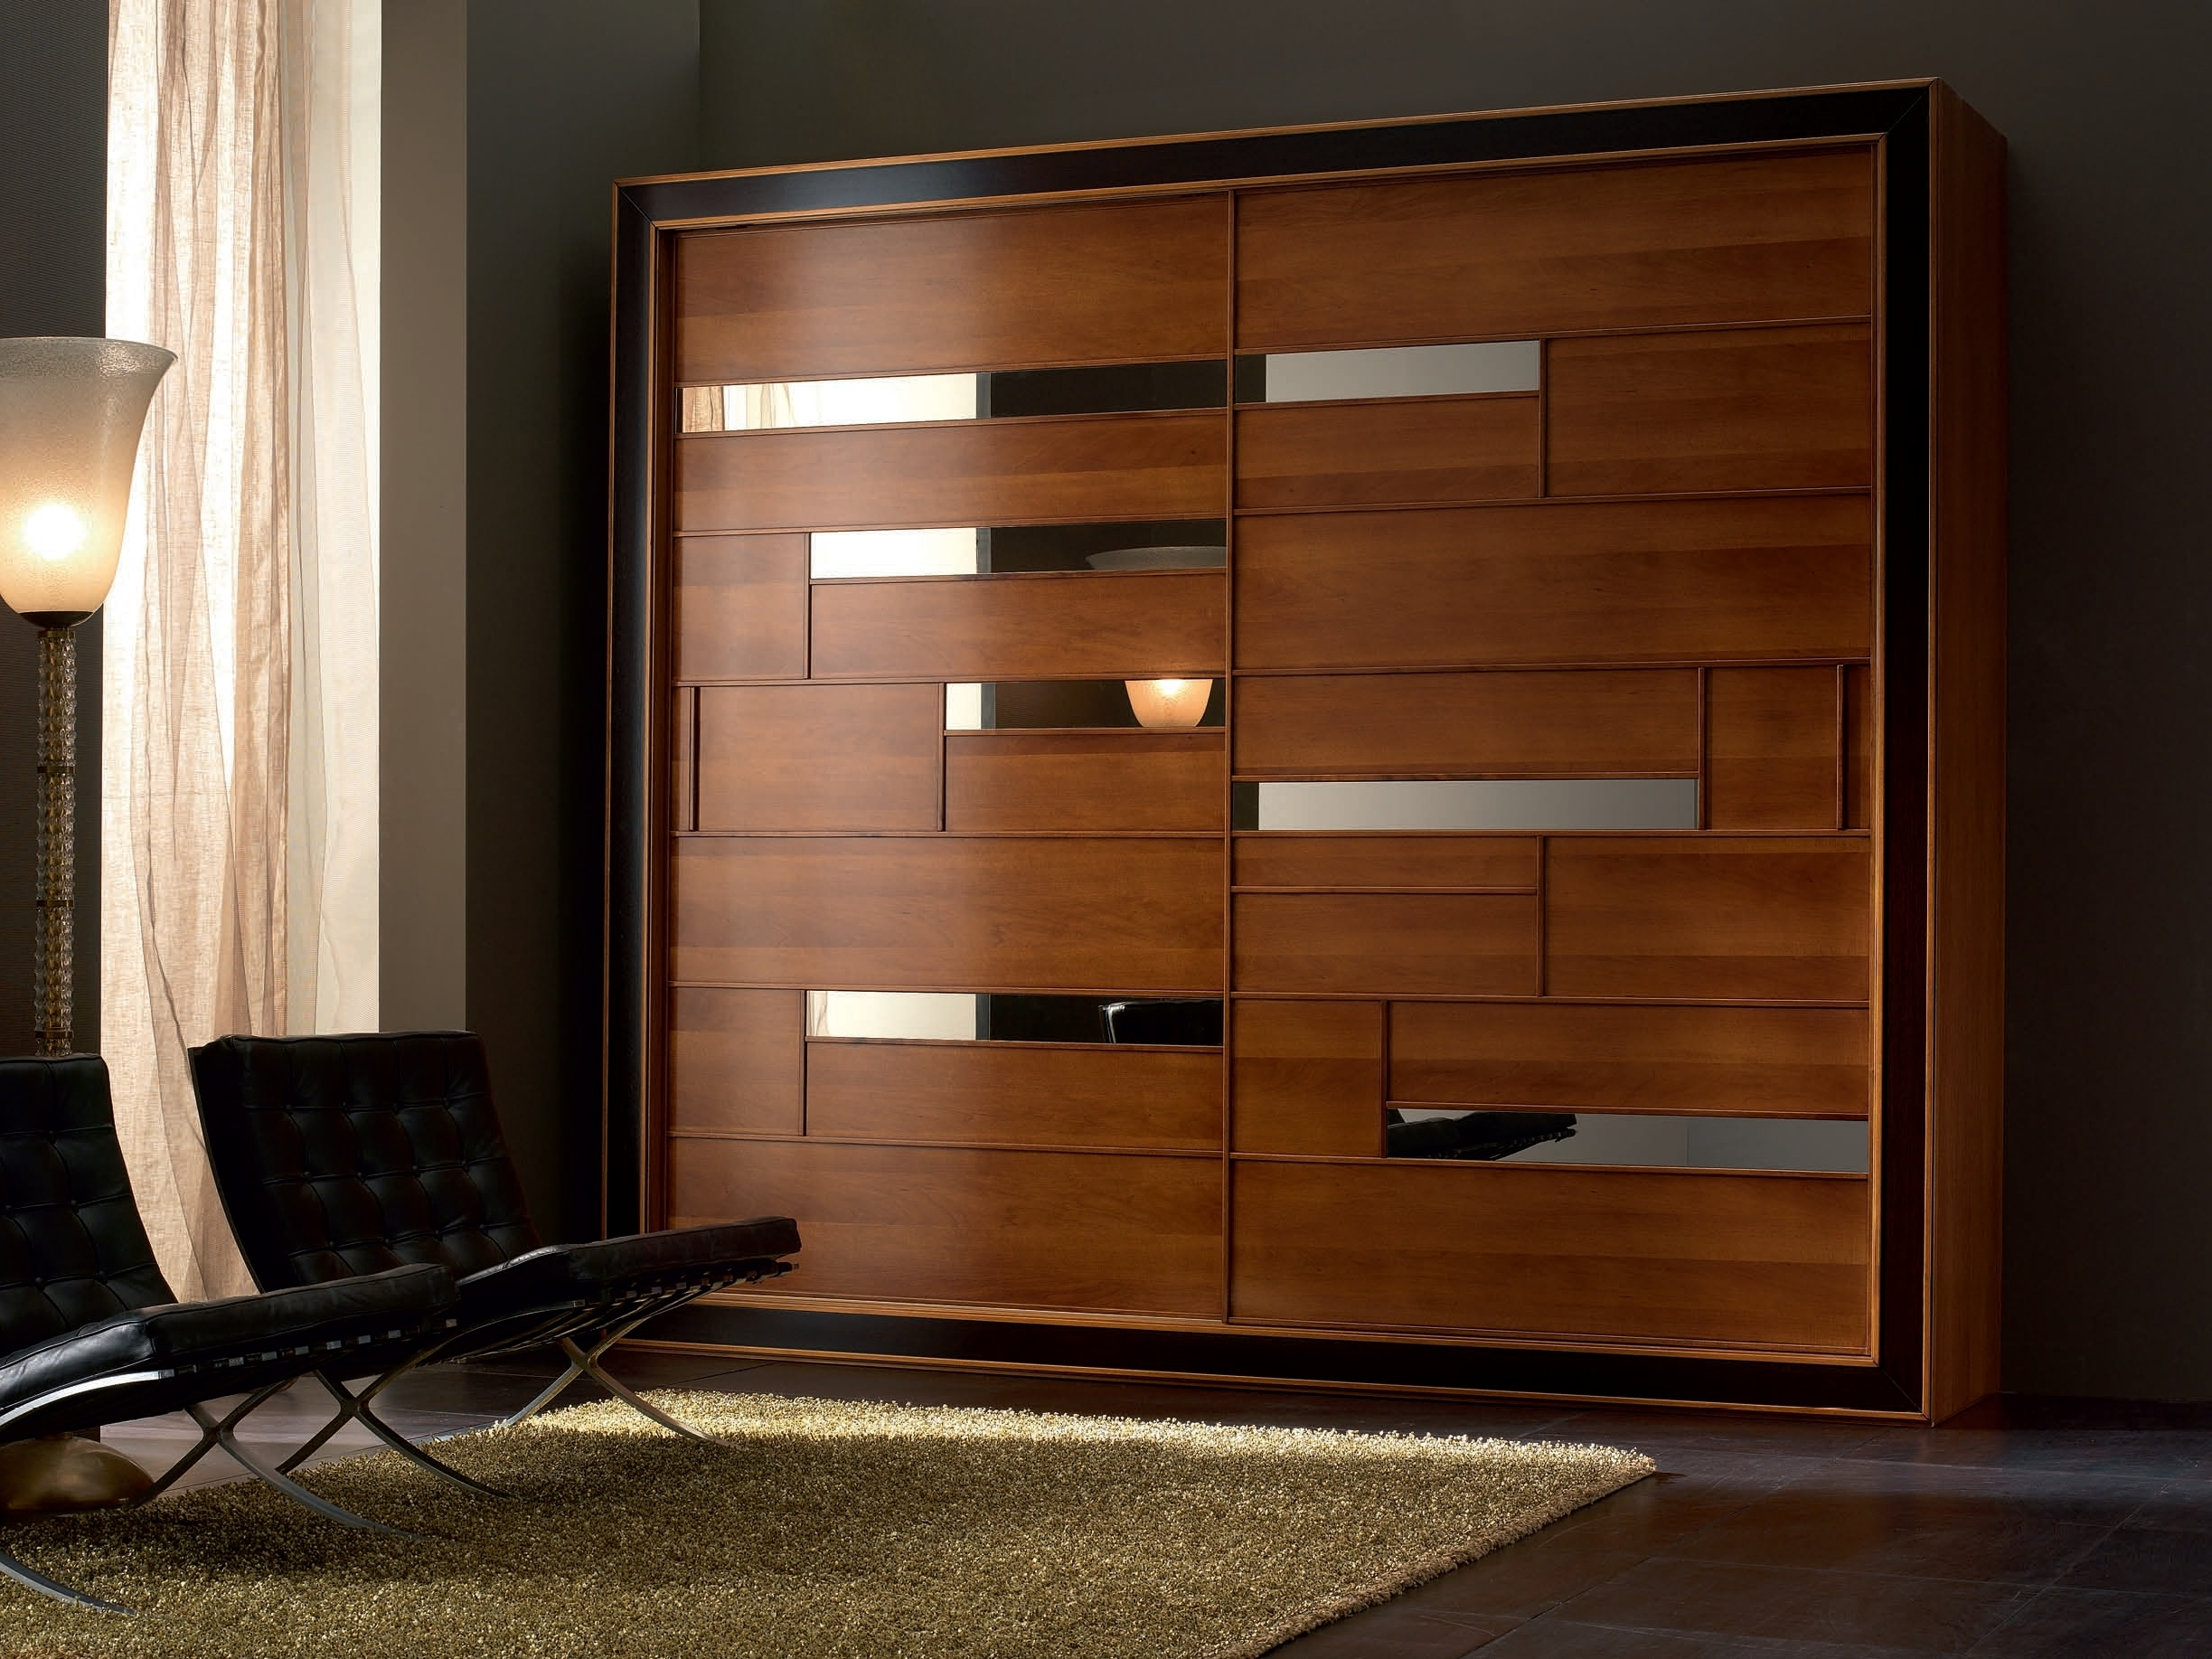 Solid Wood Fitted Wardrobes White Wardrobe Dark You Must See This Throughout Fashionable Wood Wardrobes (View 9 of 15)